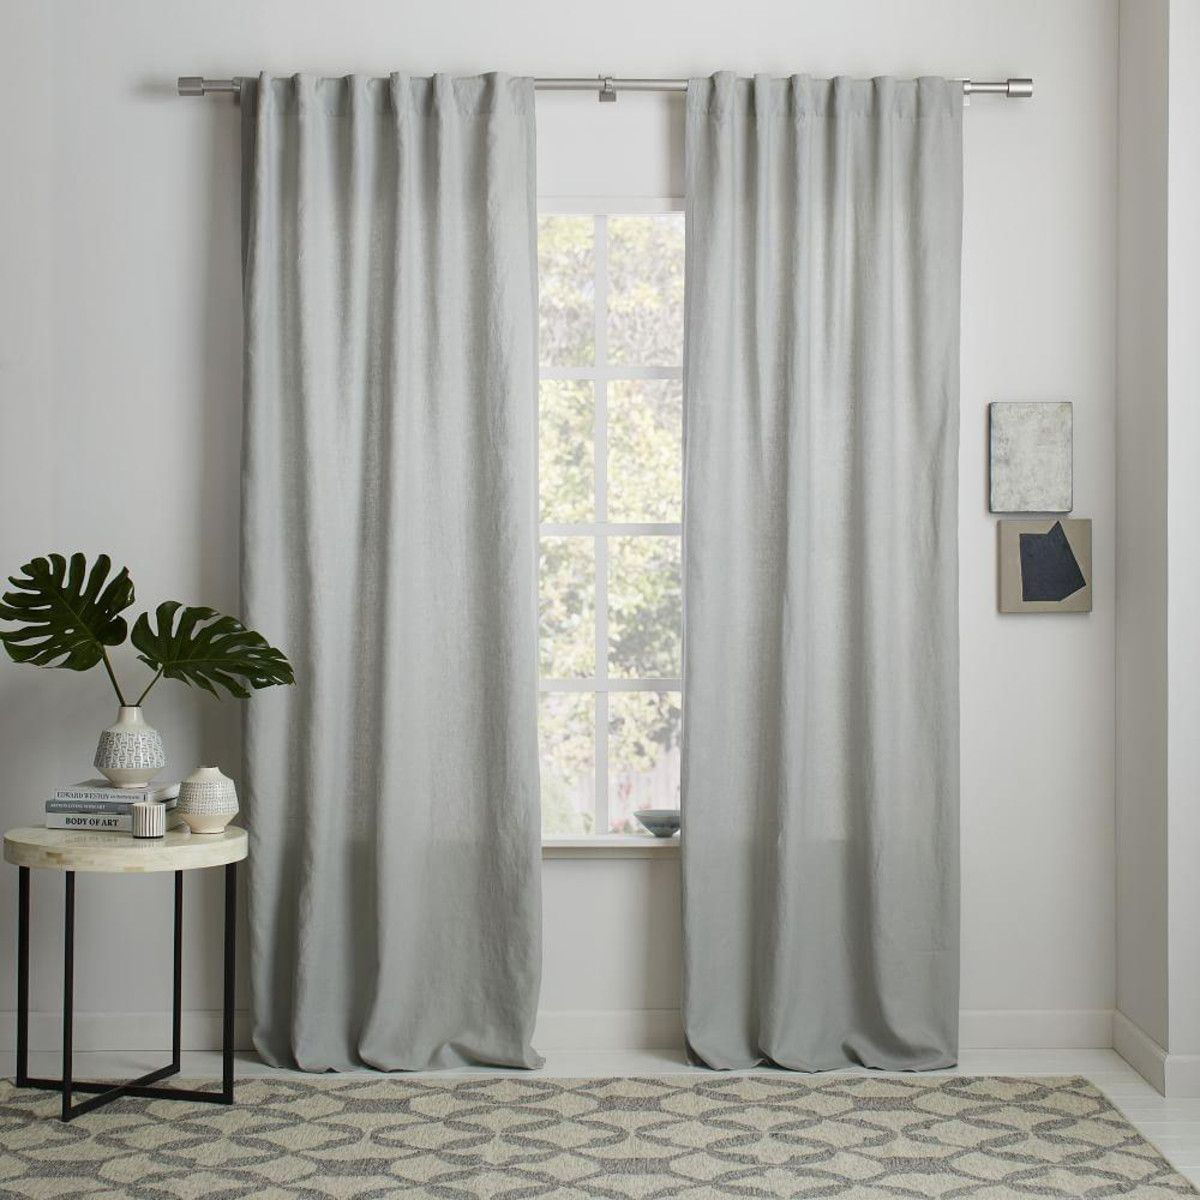 Belgian Flax Linen Curtain Blackout Lining Platinum West Elm Uk